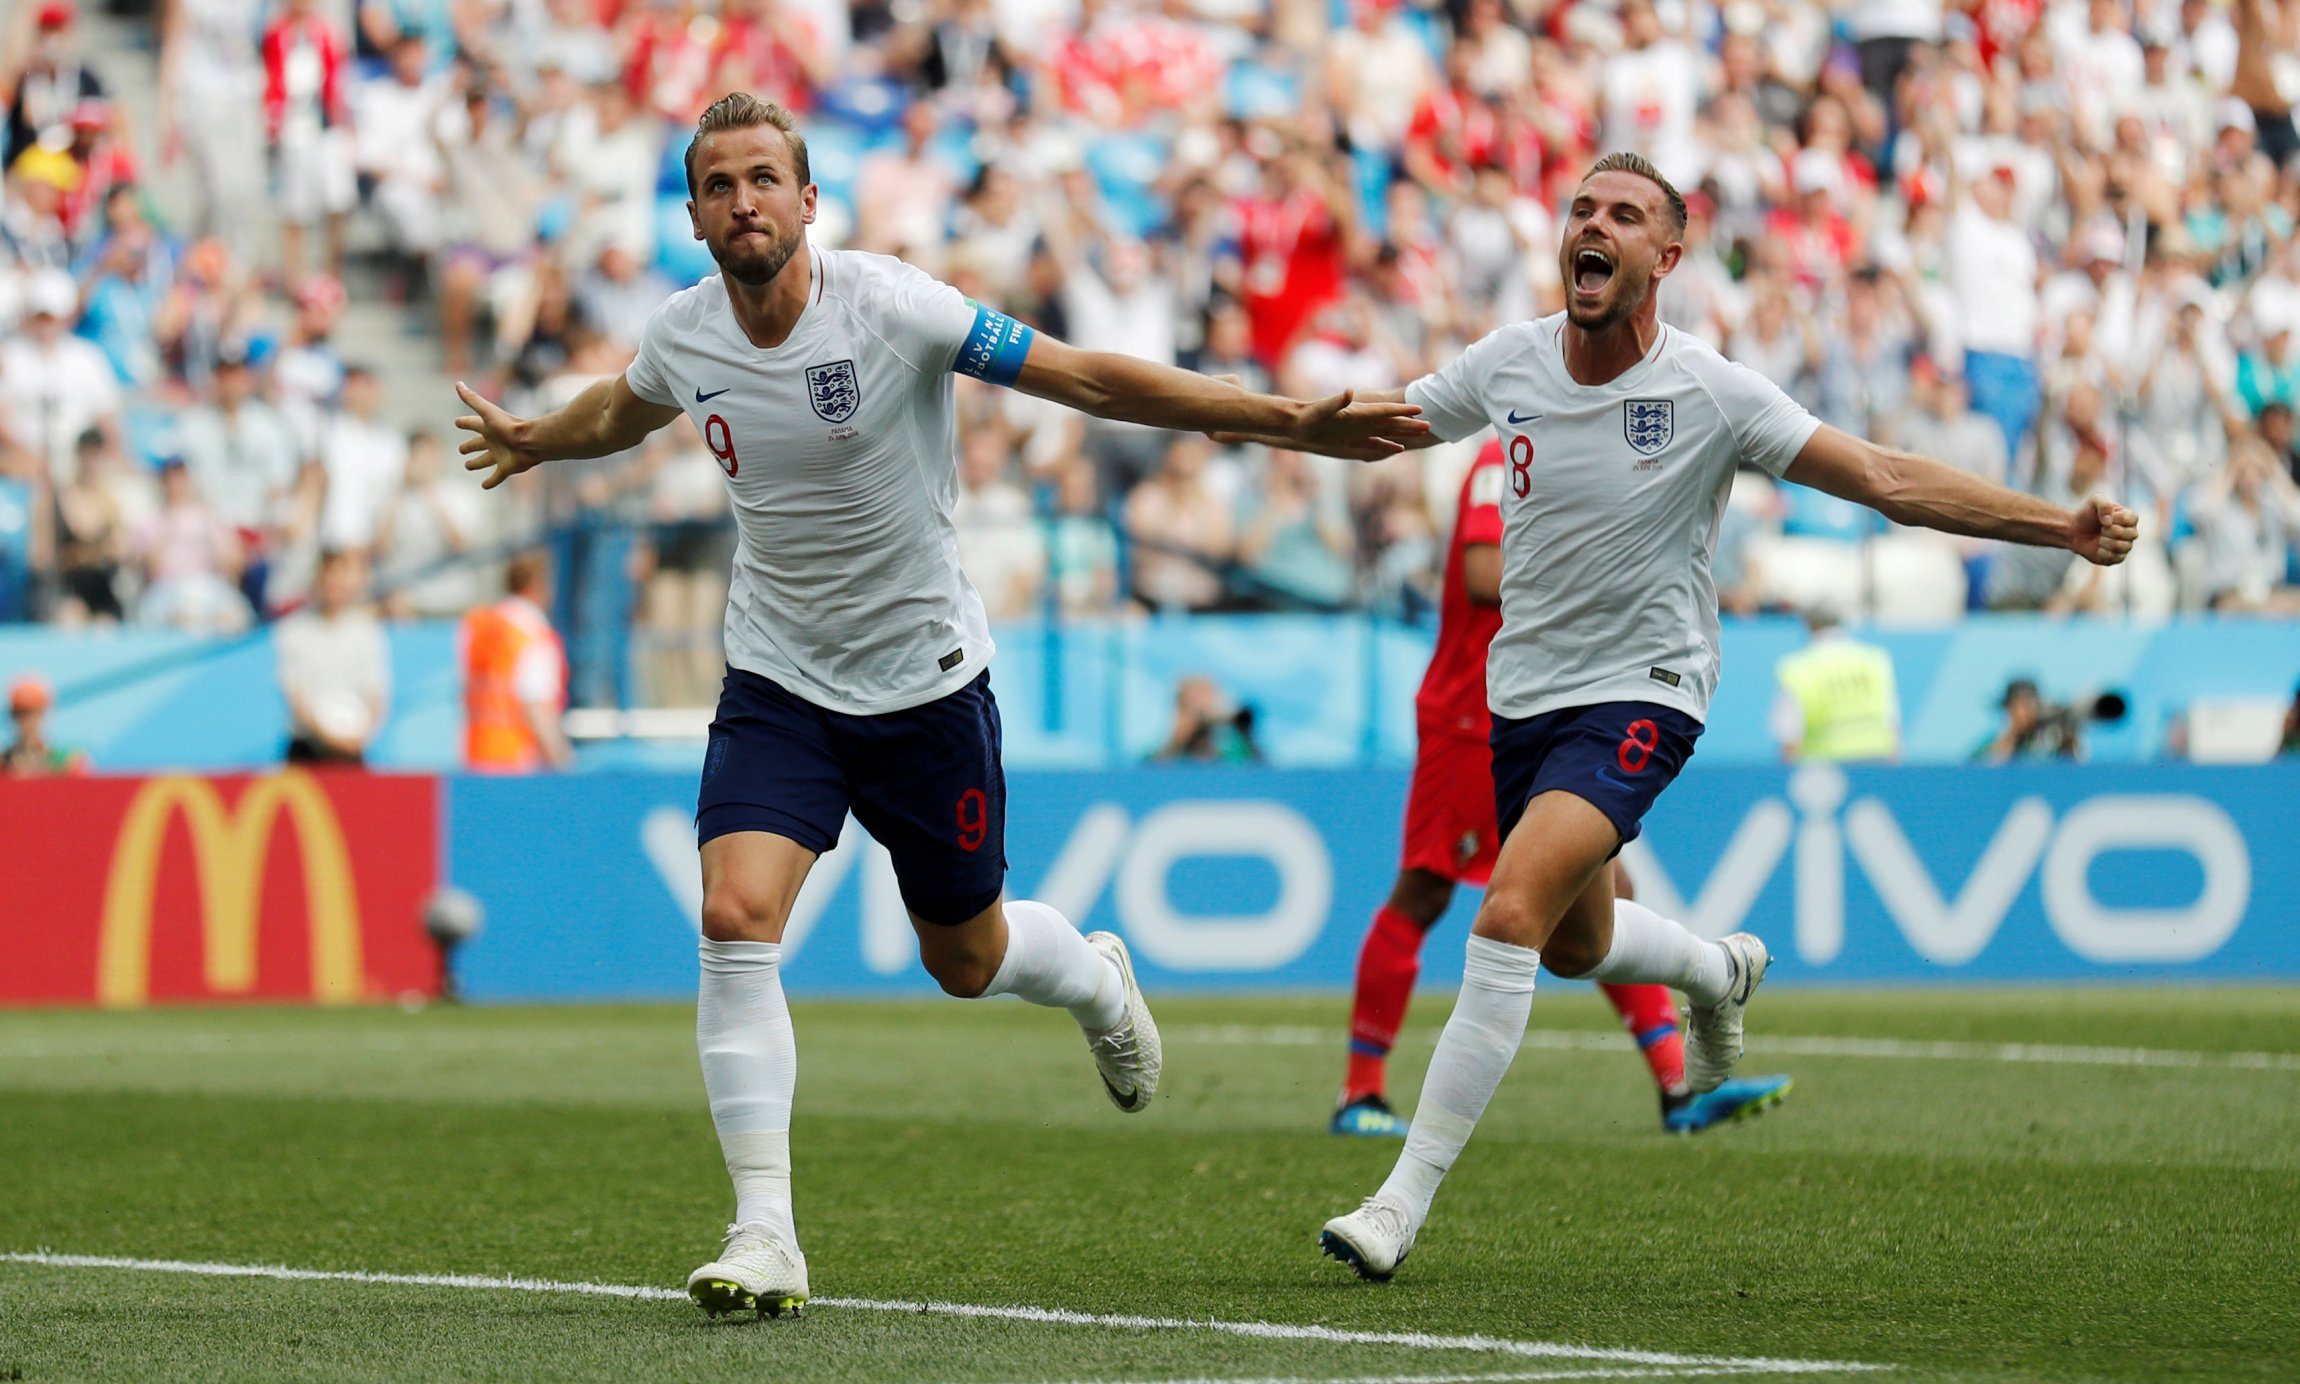 England experts predict 'physical slog' between Tottenham duo, fear